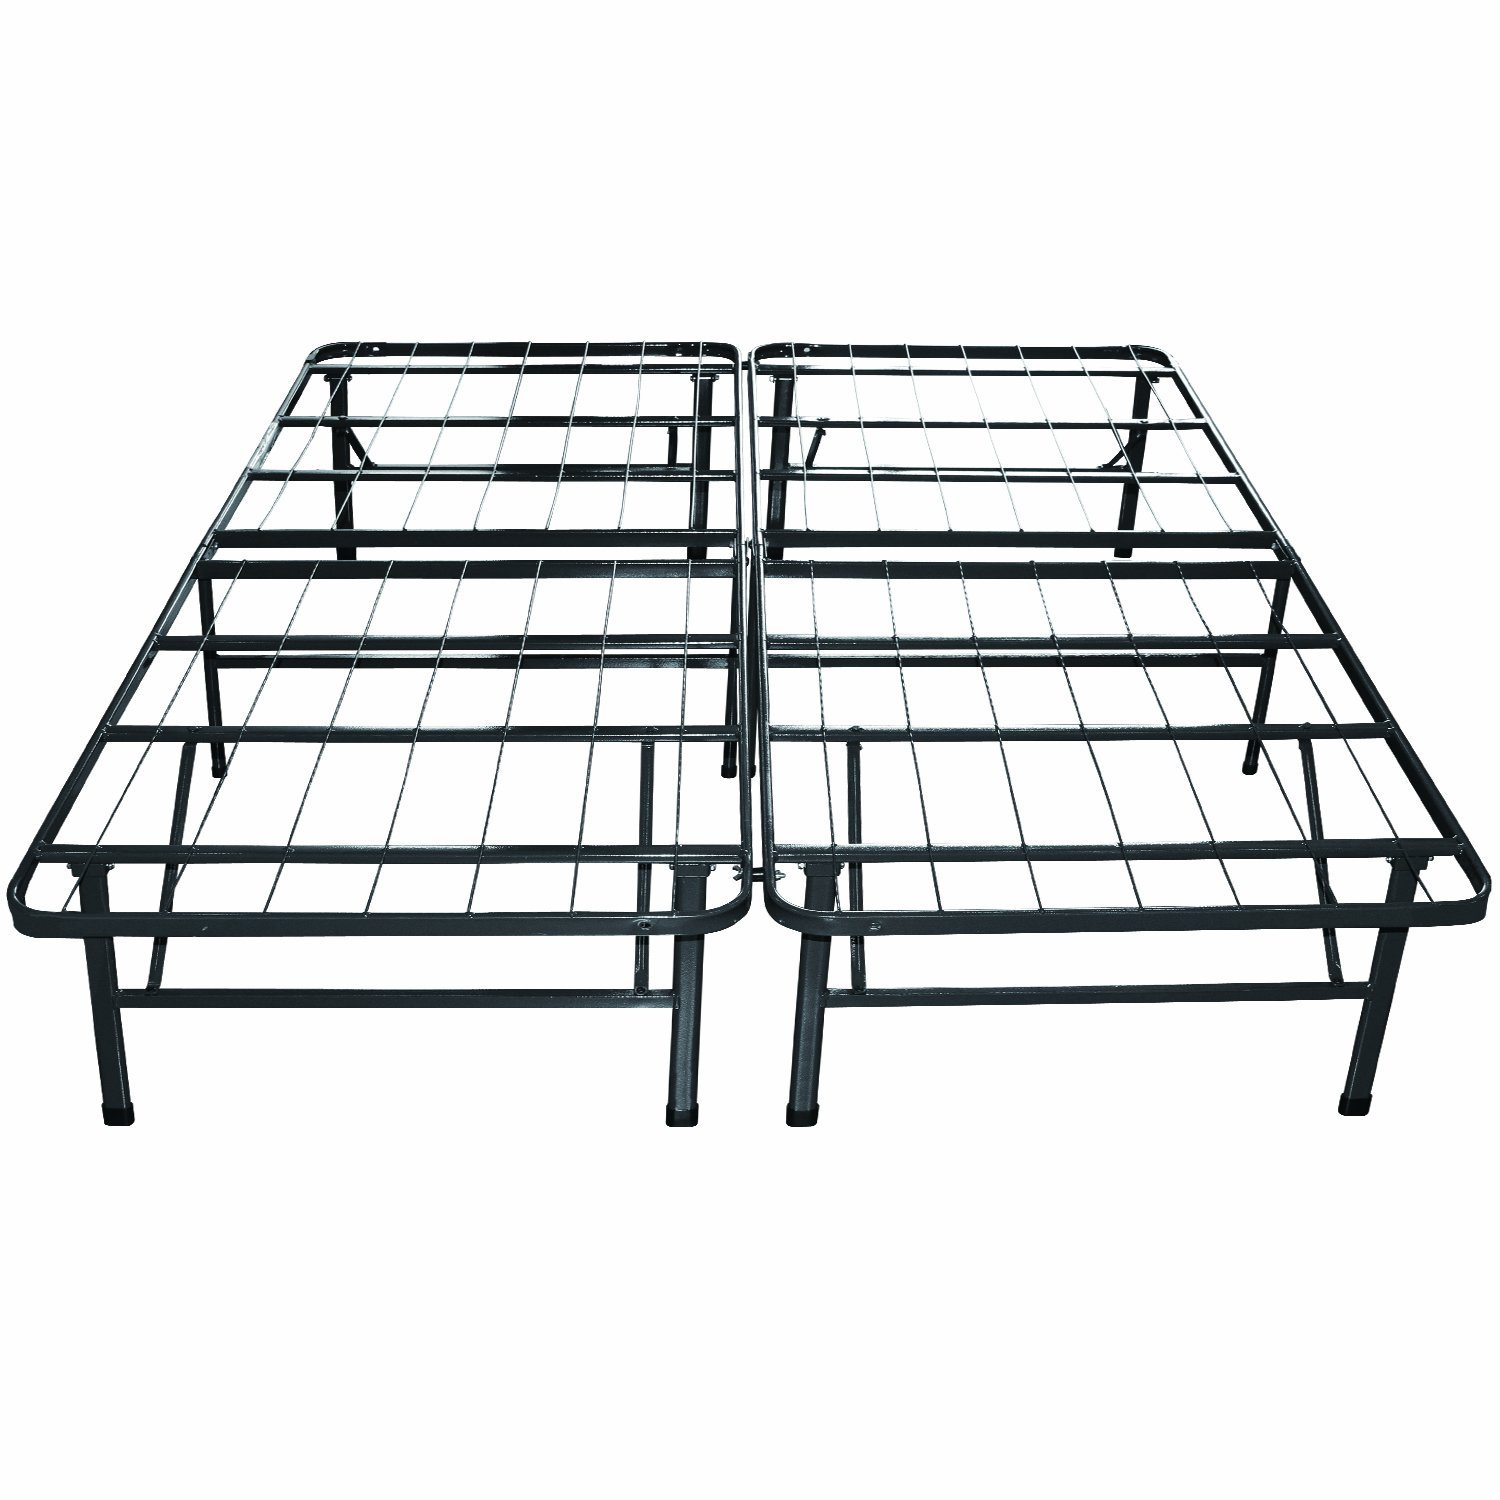 5 best bed frame u2013 providing excellent support and durability tool box - Steel Bed Frames